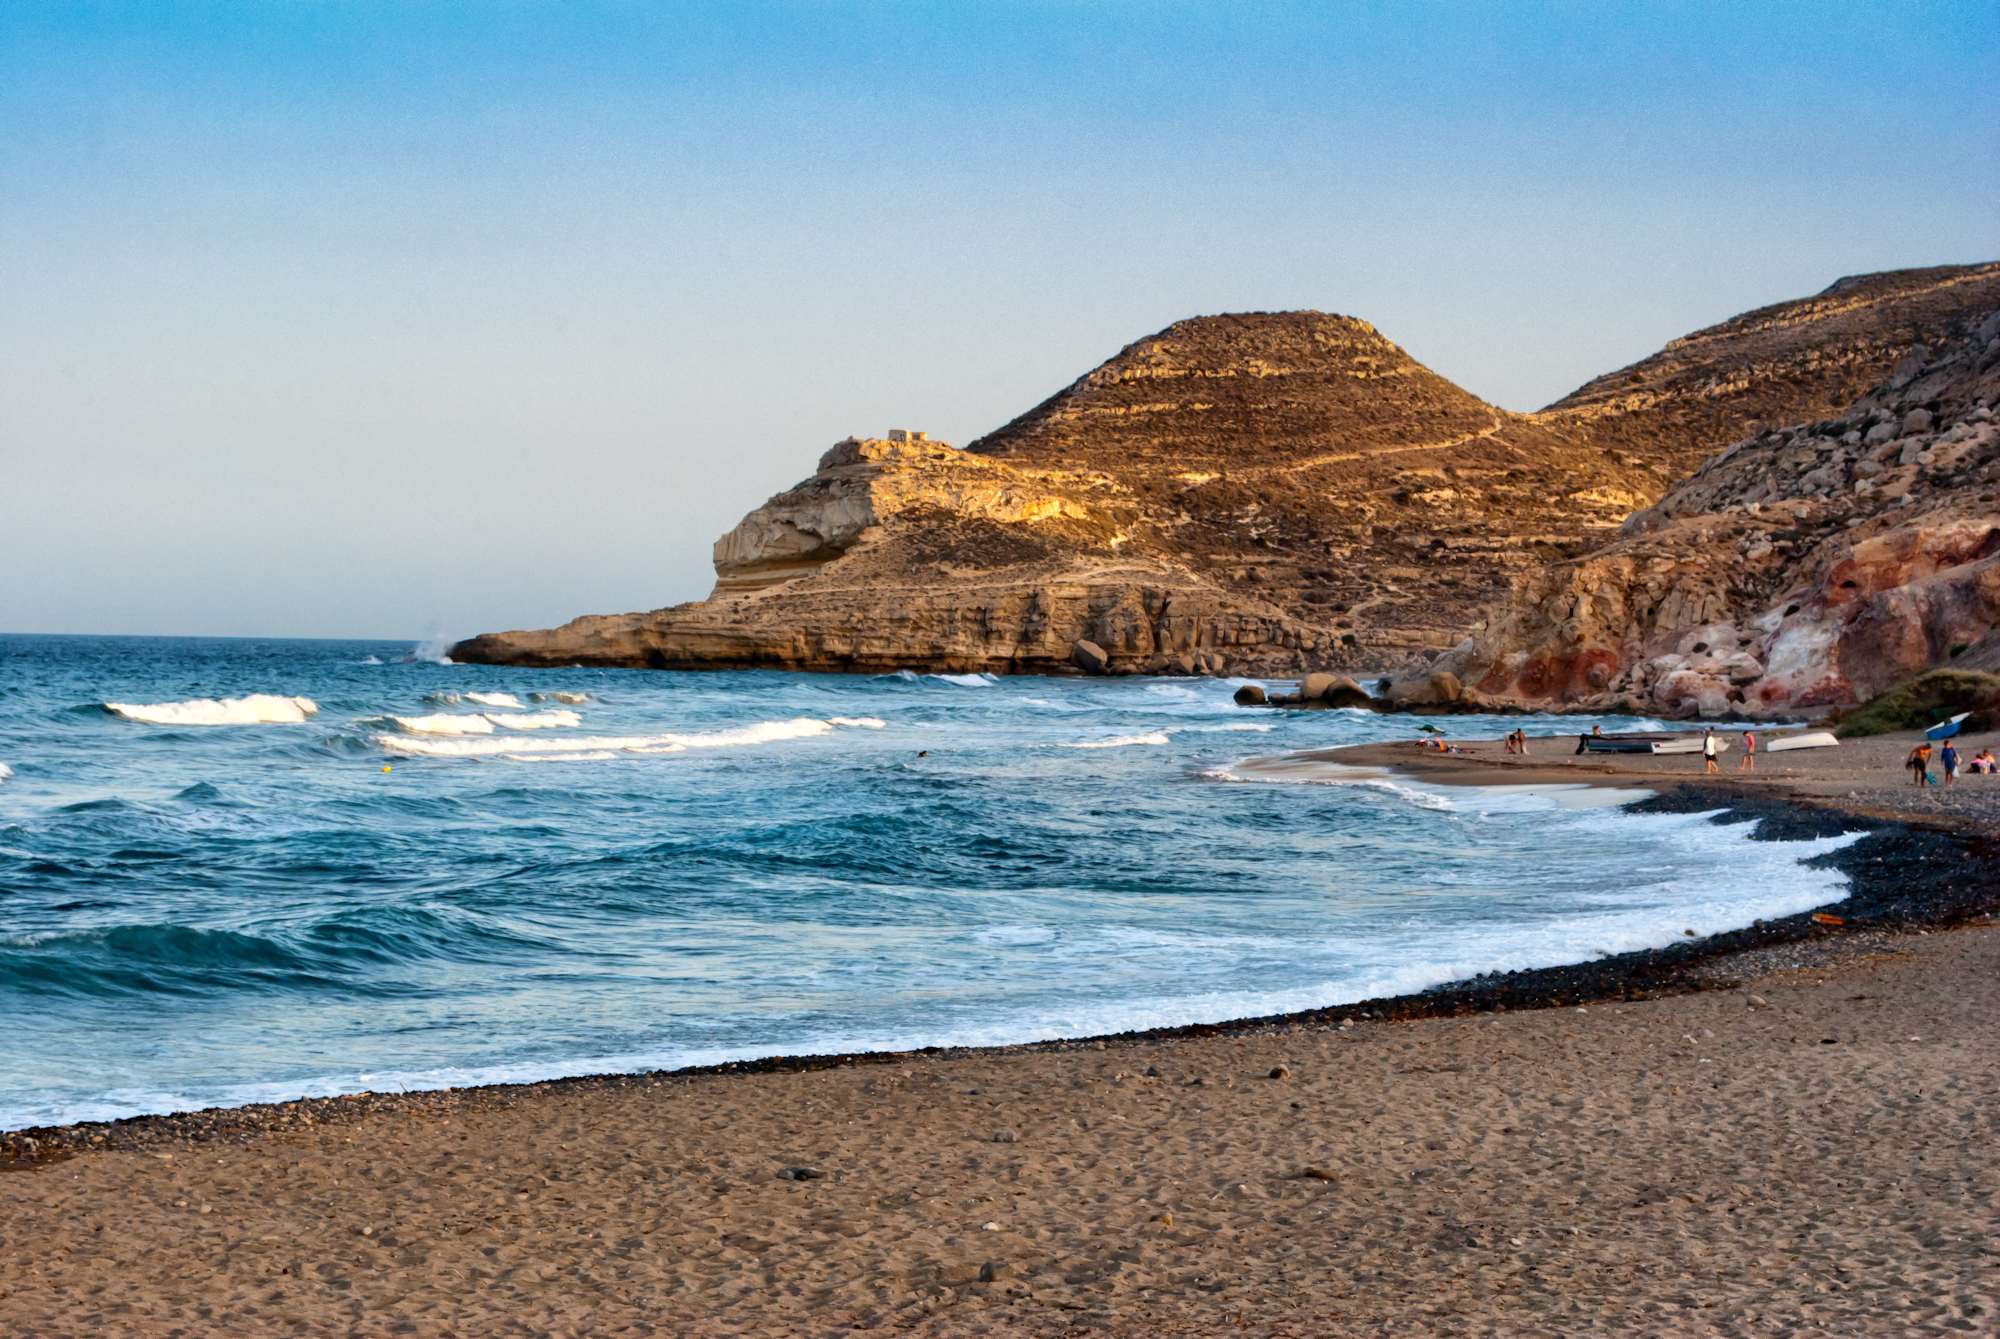 The 10 Best Beaches In Almeria You Should Visit Ruralidays